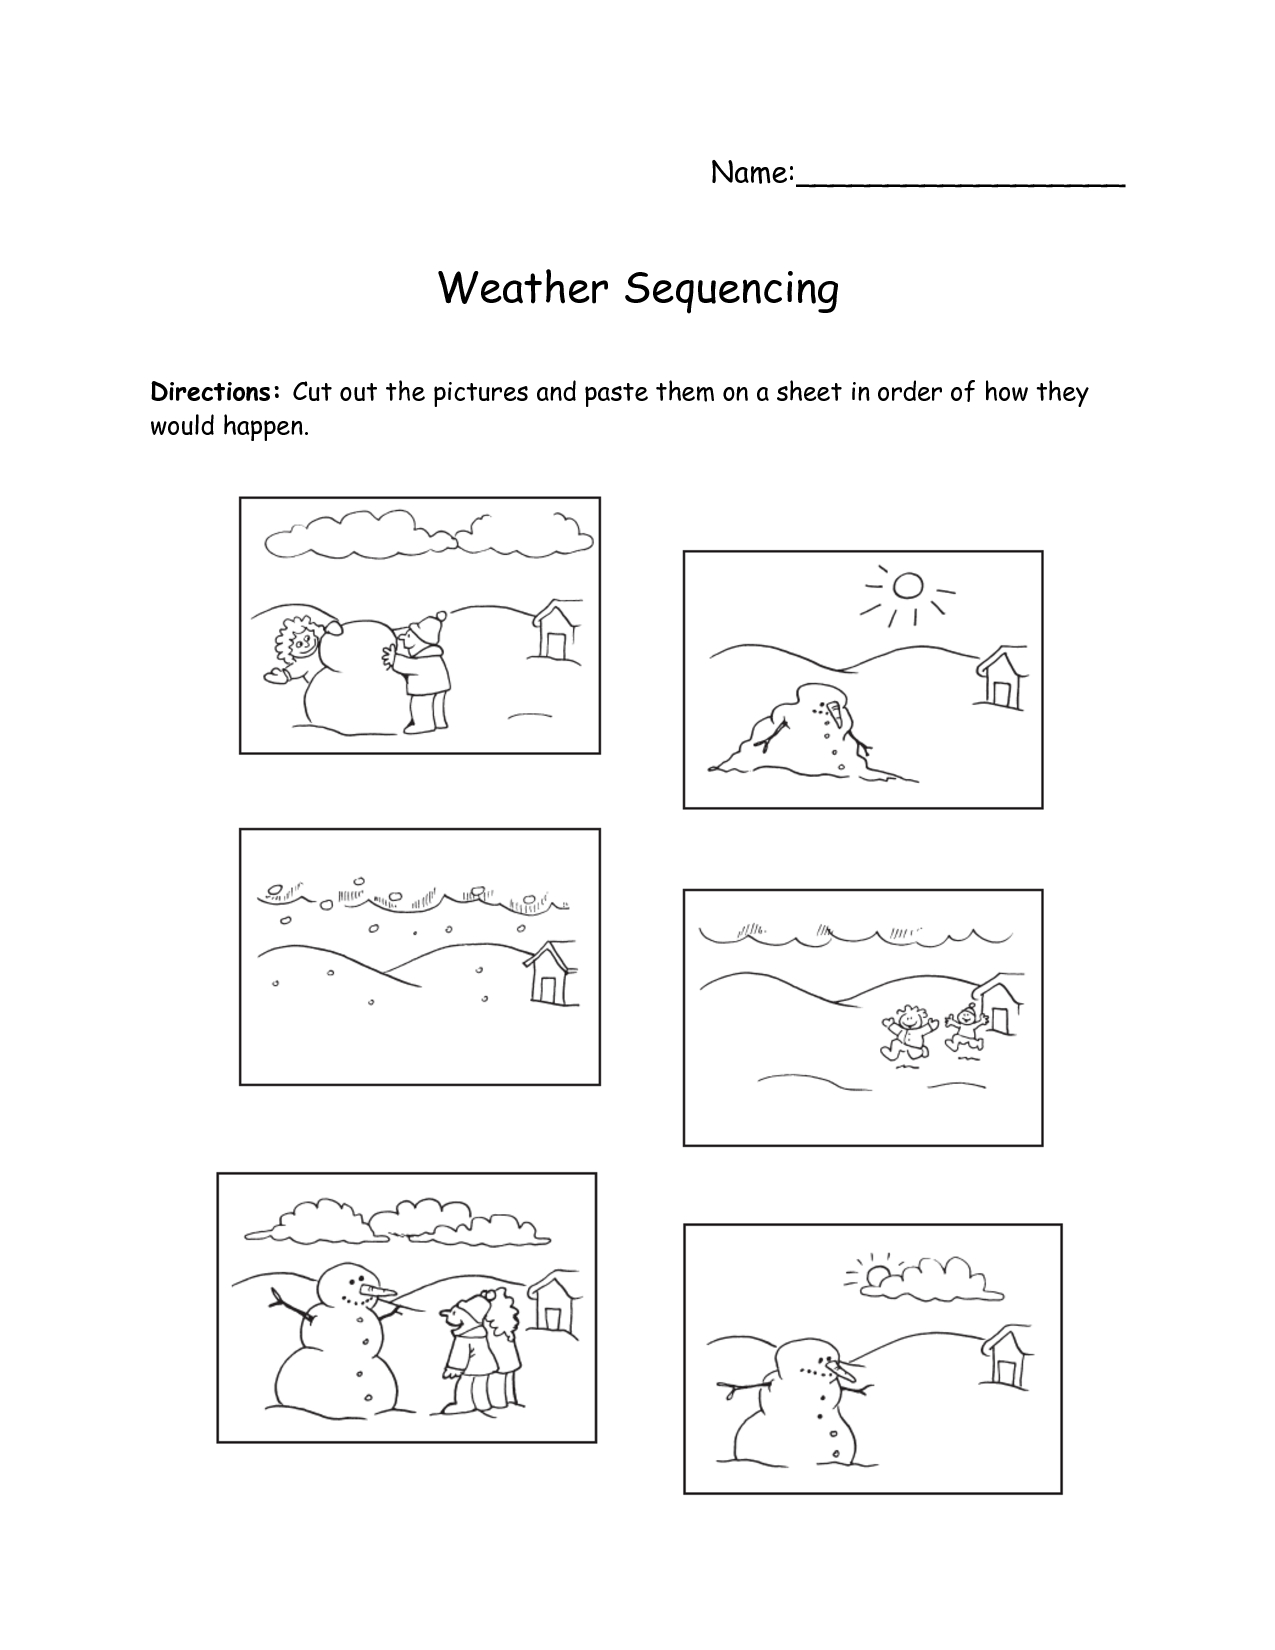 Sequence Of Events Worksheets Diagrams - 5.11.geuzencollege - Free Printable Sequencing Worksheets 2Nd Grade